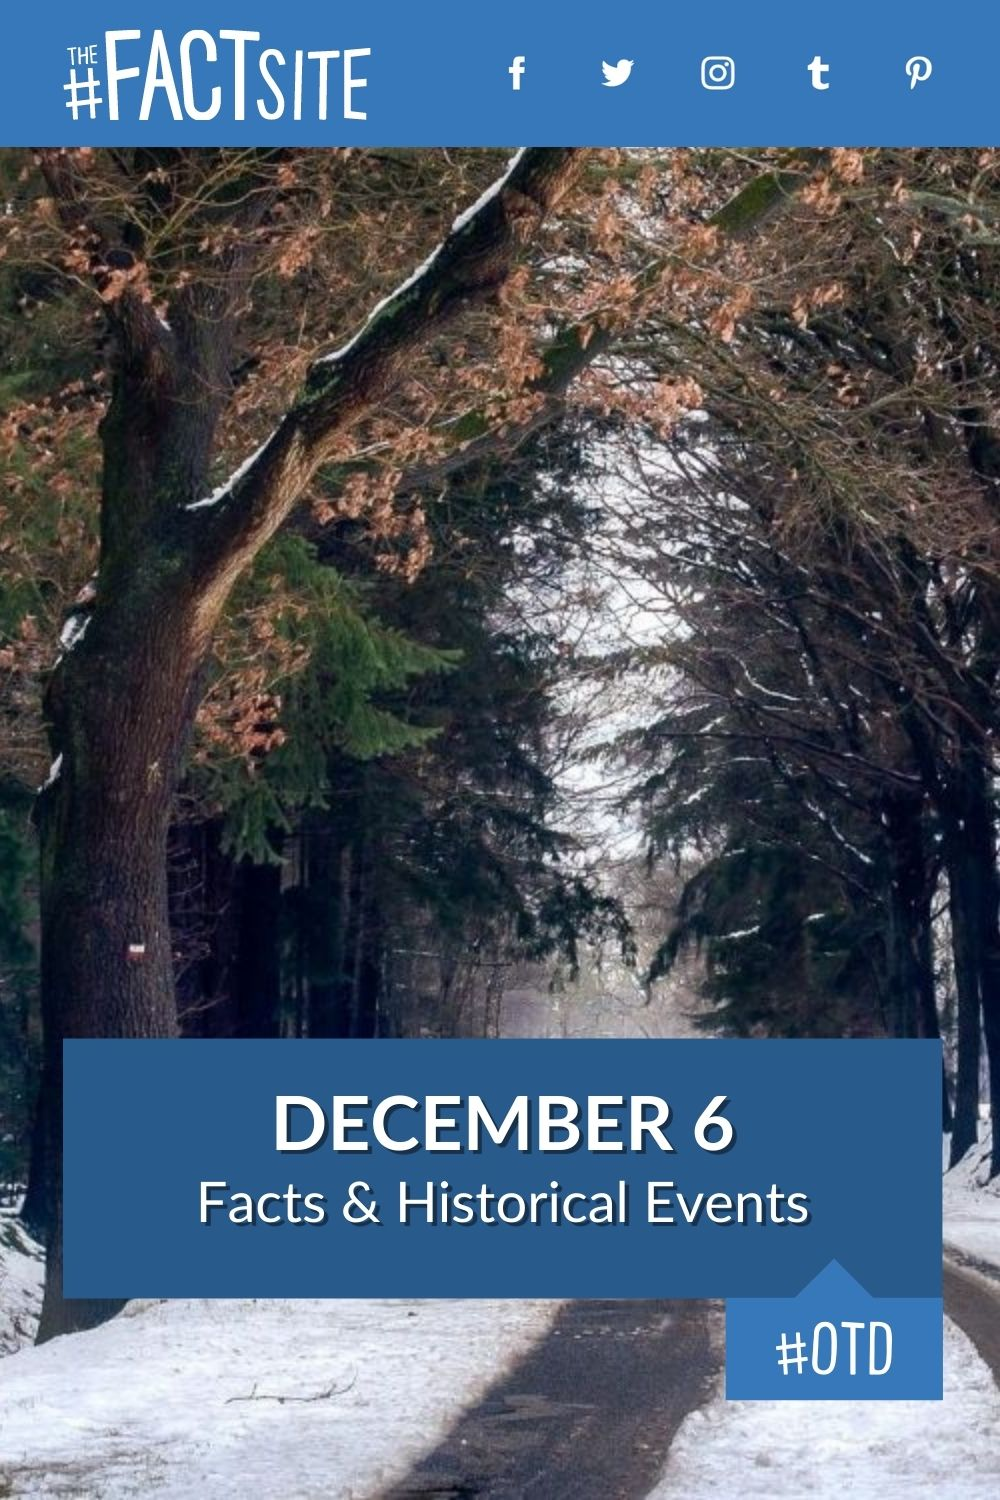 Facts & Historic Events That Happened on December 6